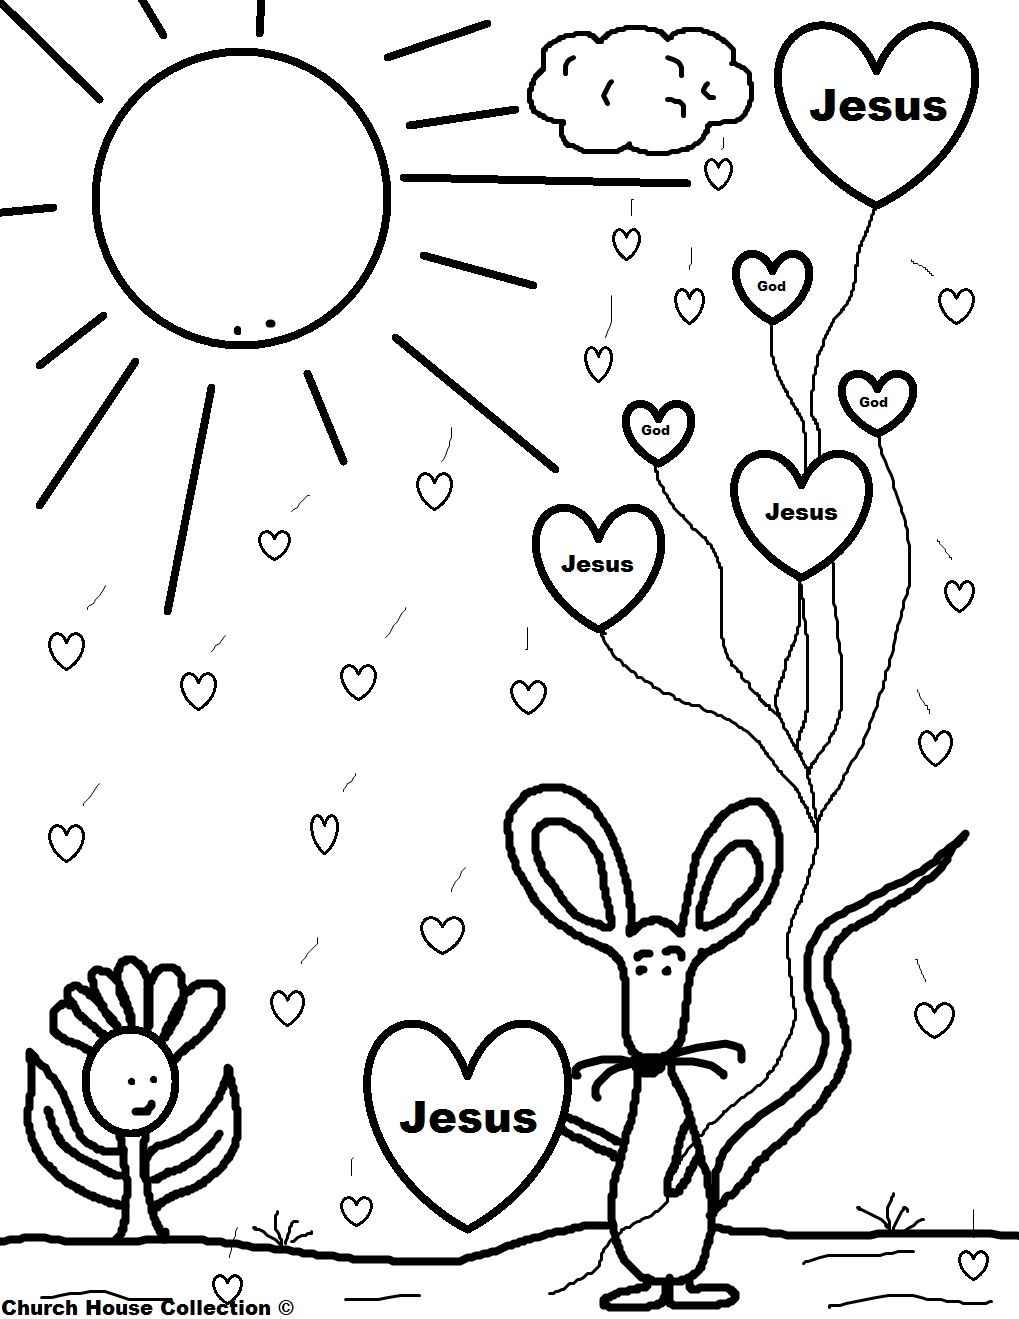 Church House Collection Blog Valentine Mouse Holding Jesus Balloons Coloring Page Valentine Coloring Pages Valentine Coloring Valentines Day Coloring Page